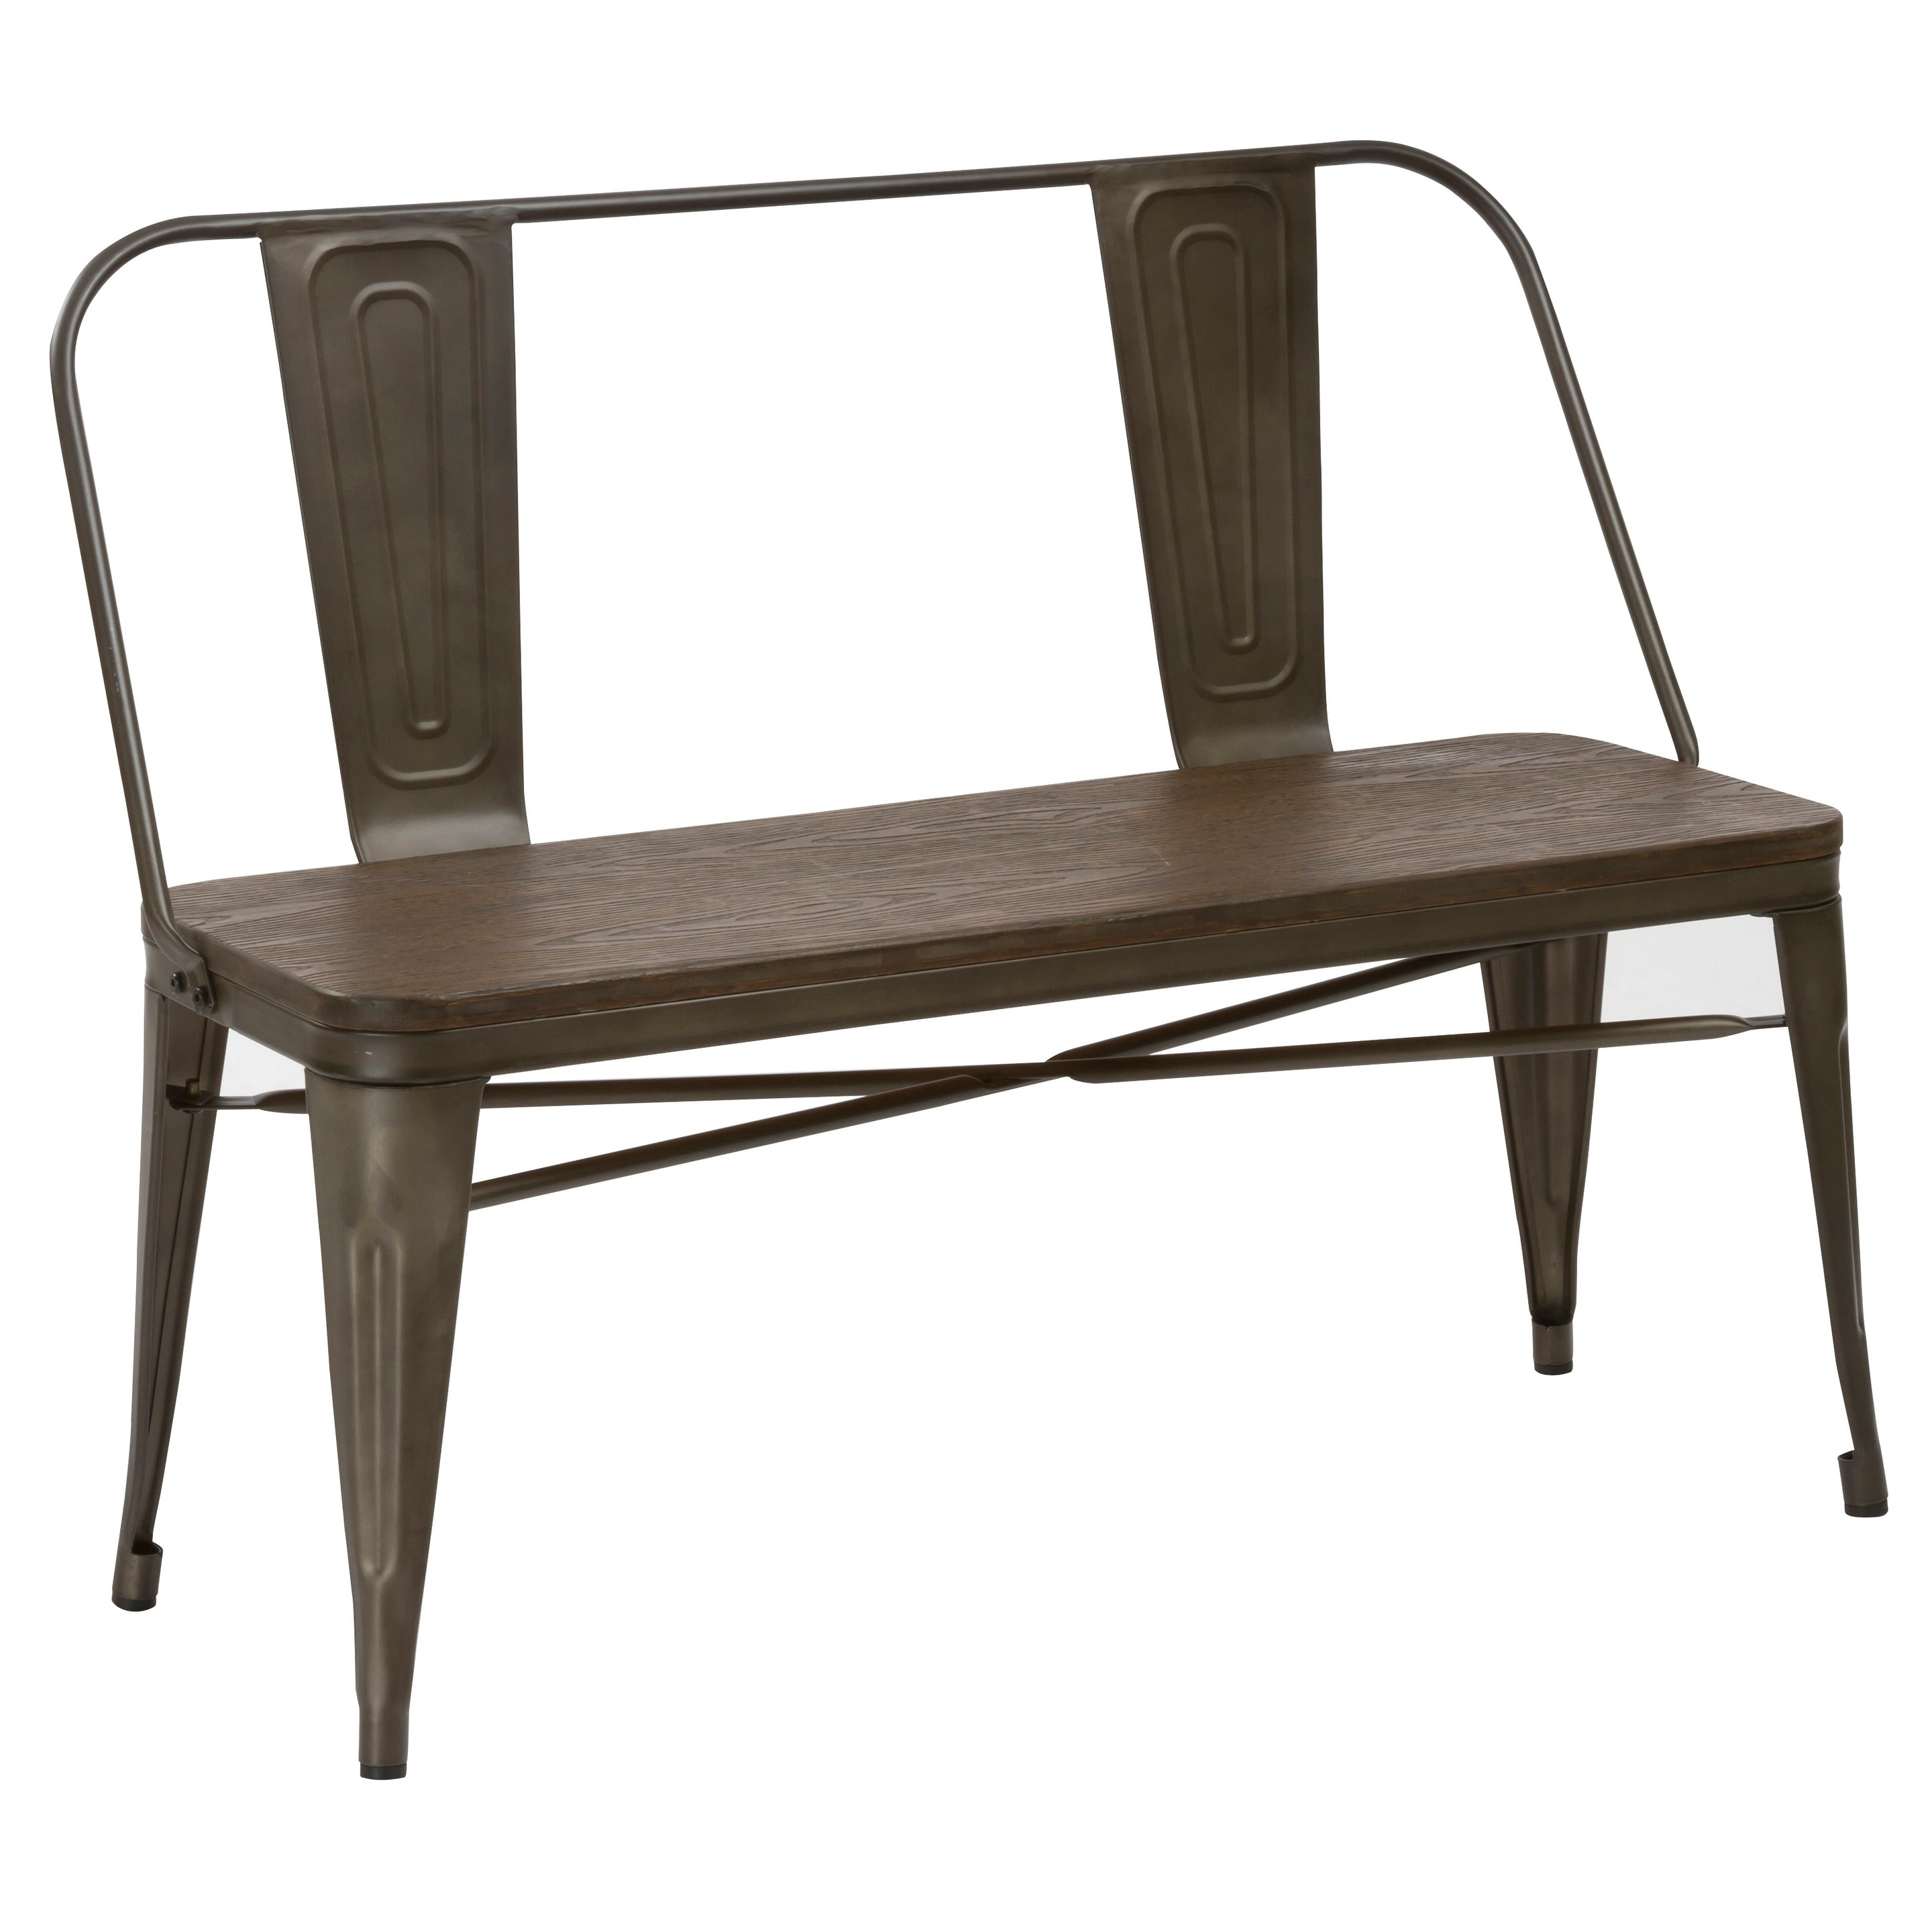 Shop Industrial Antique Rustic Wood Metal Dining Bench Full Back